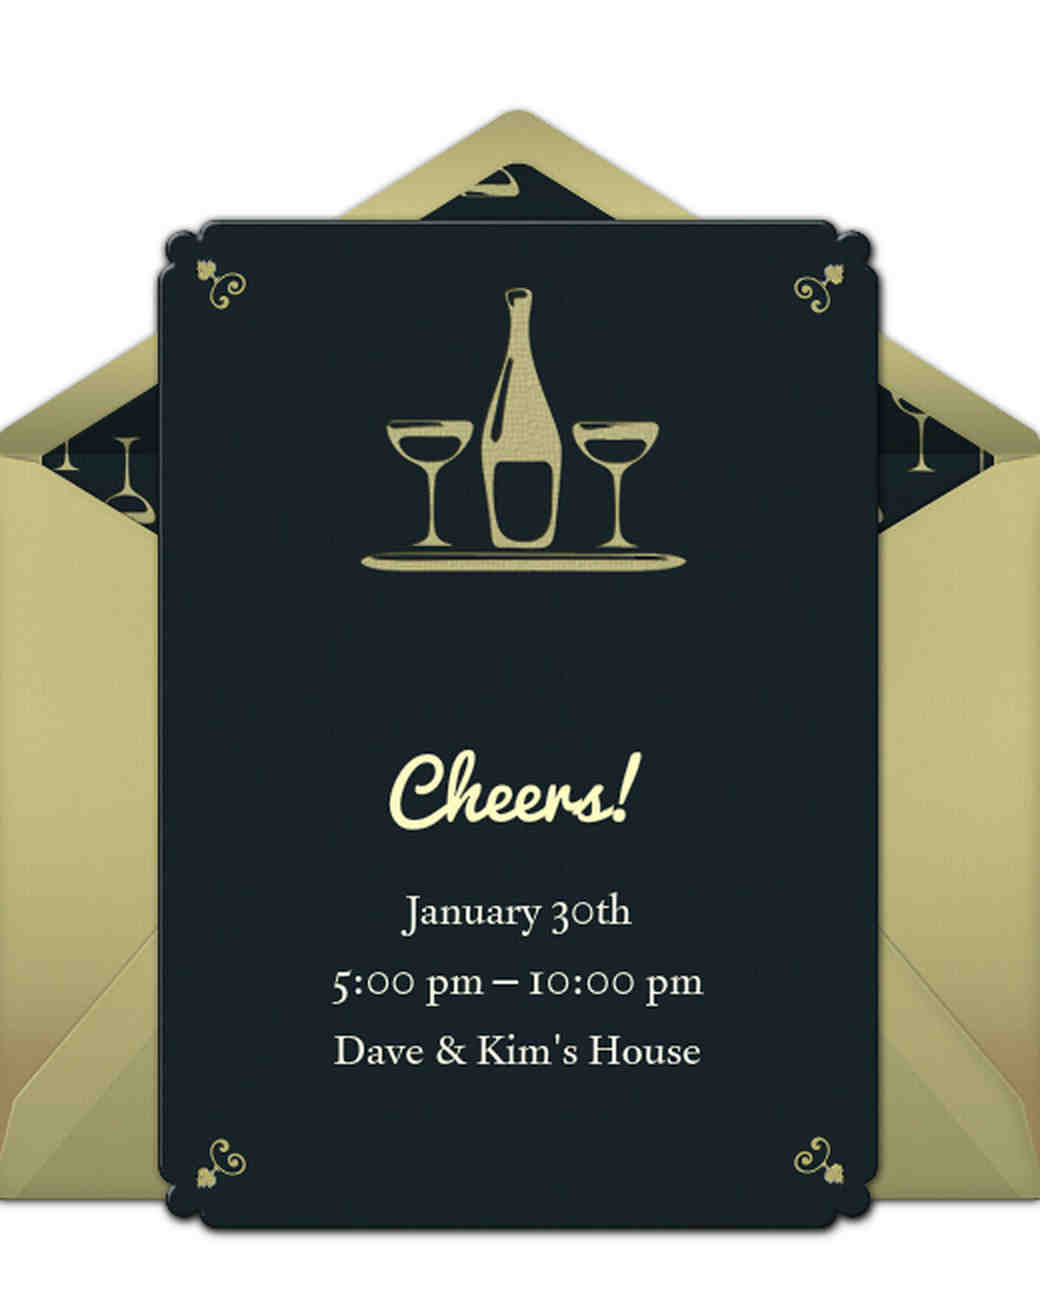 paperless-engagement-party-invitations-punchbowl-champagne-0416.jpg